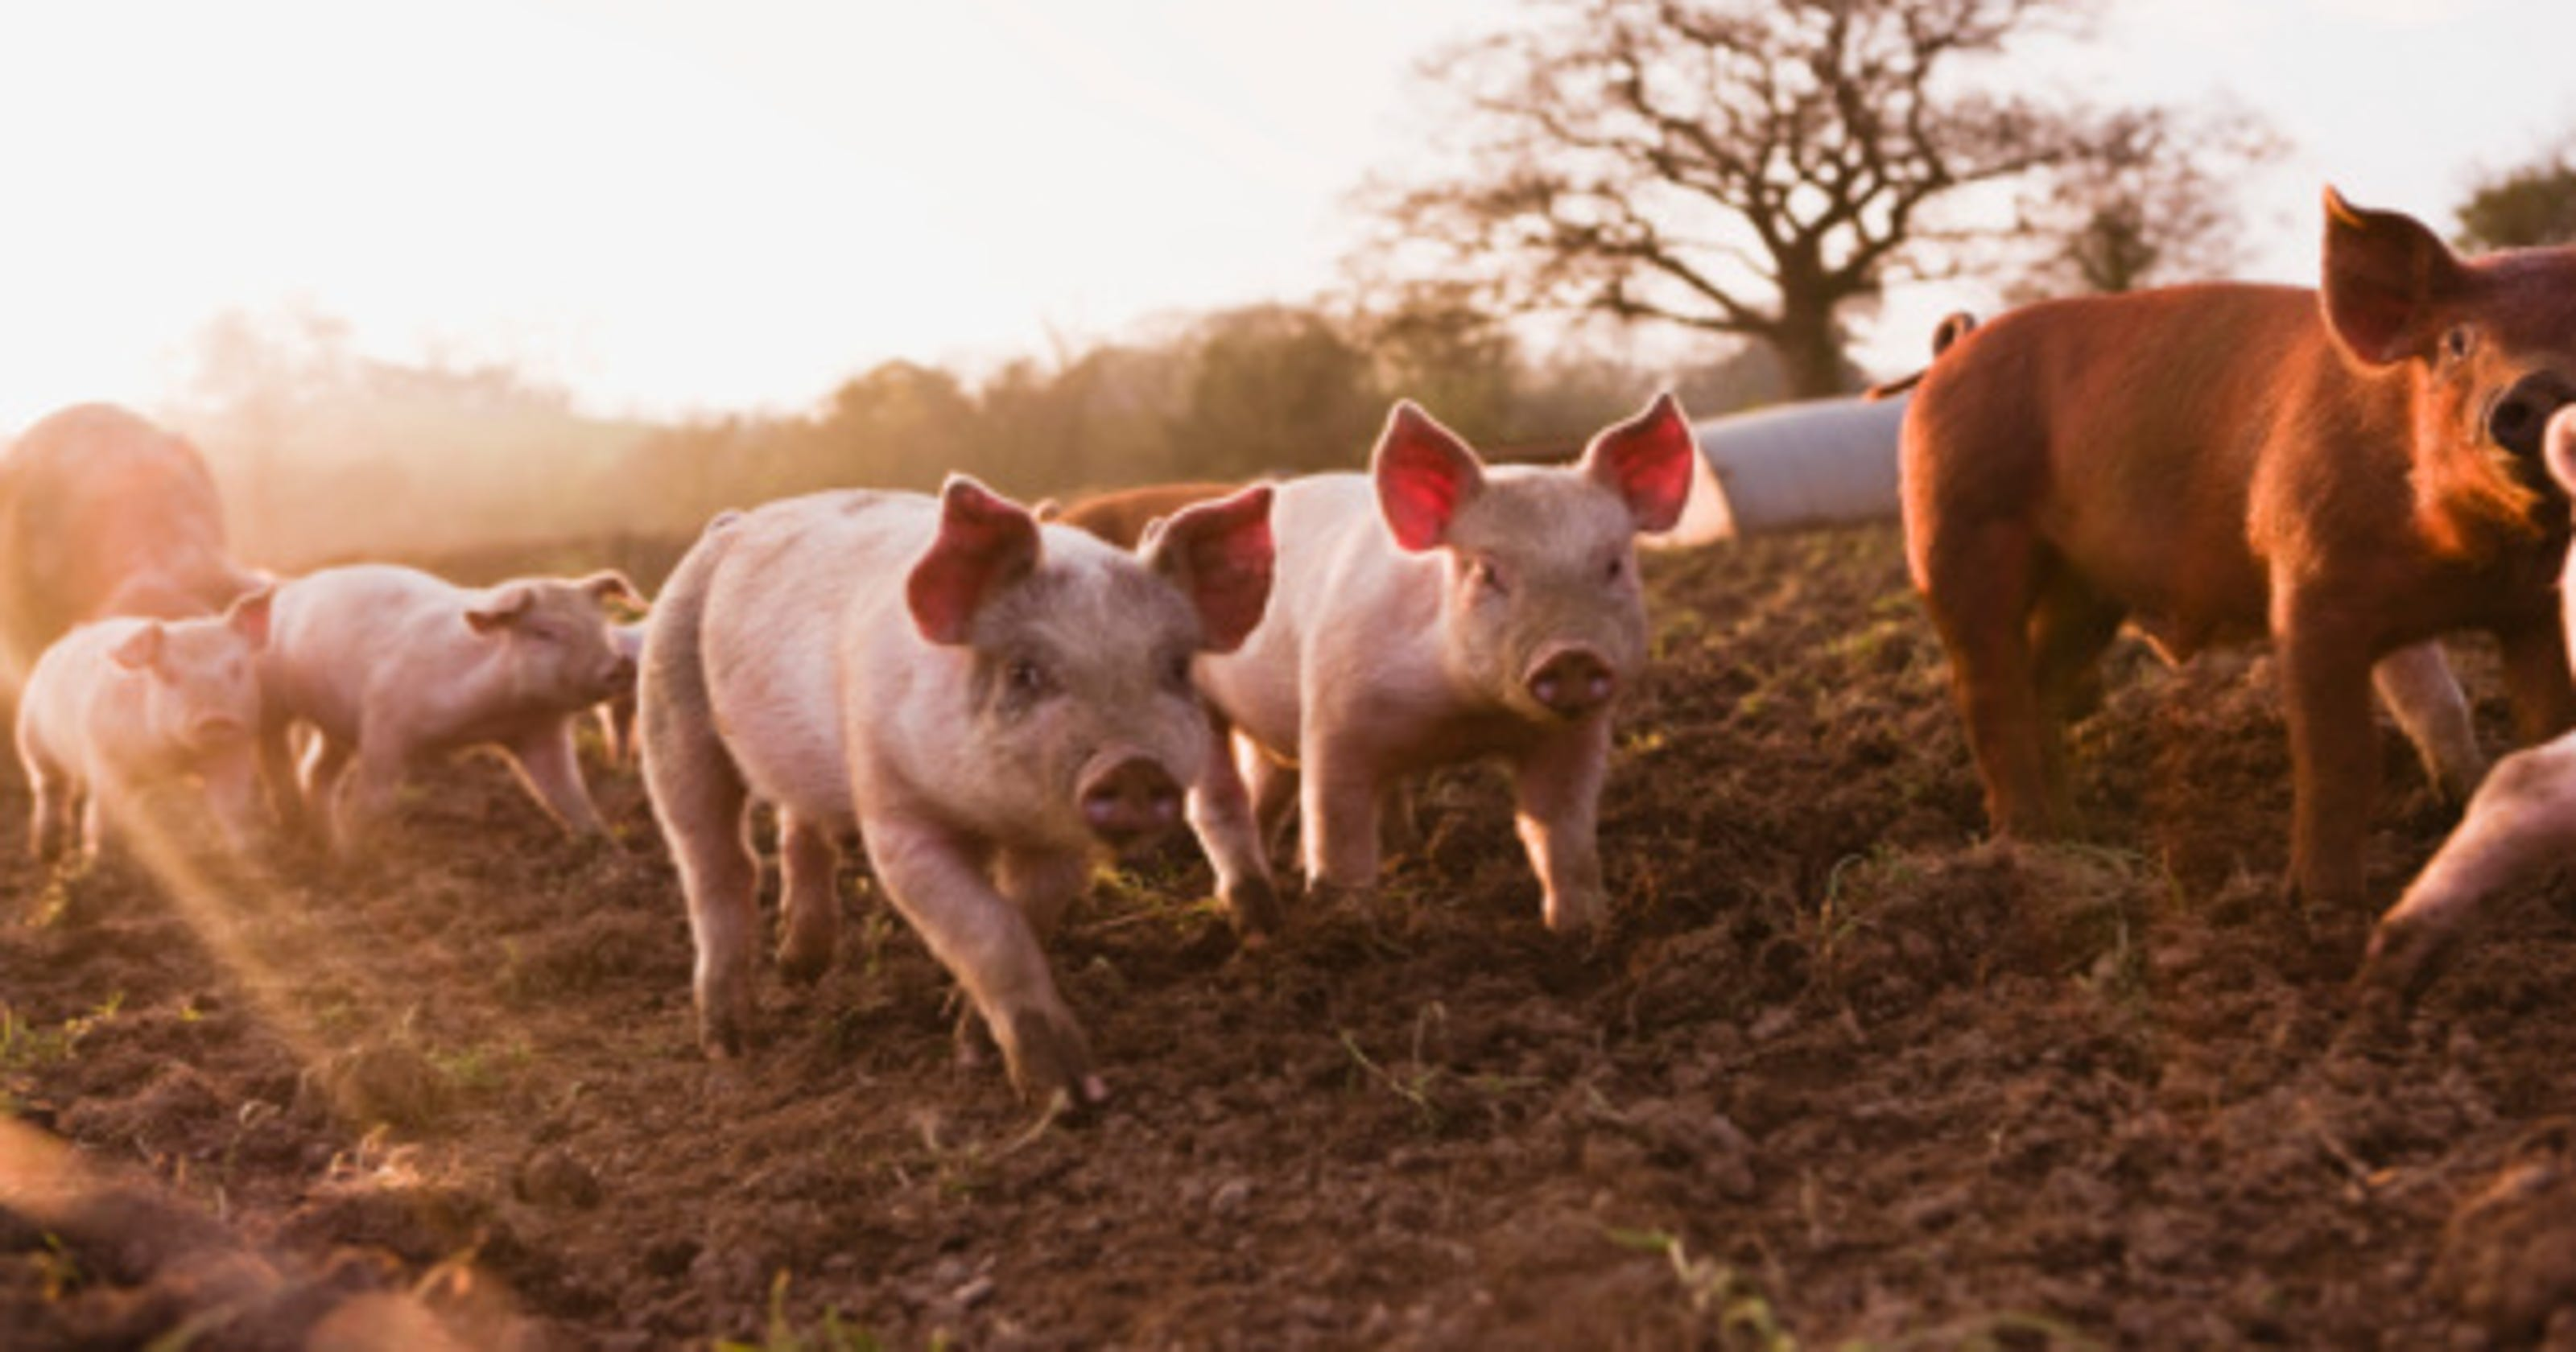 States killing the most animals for food